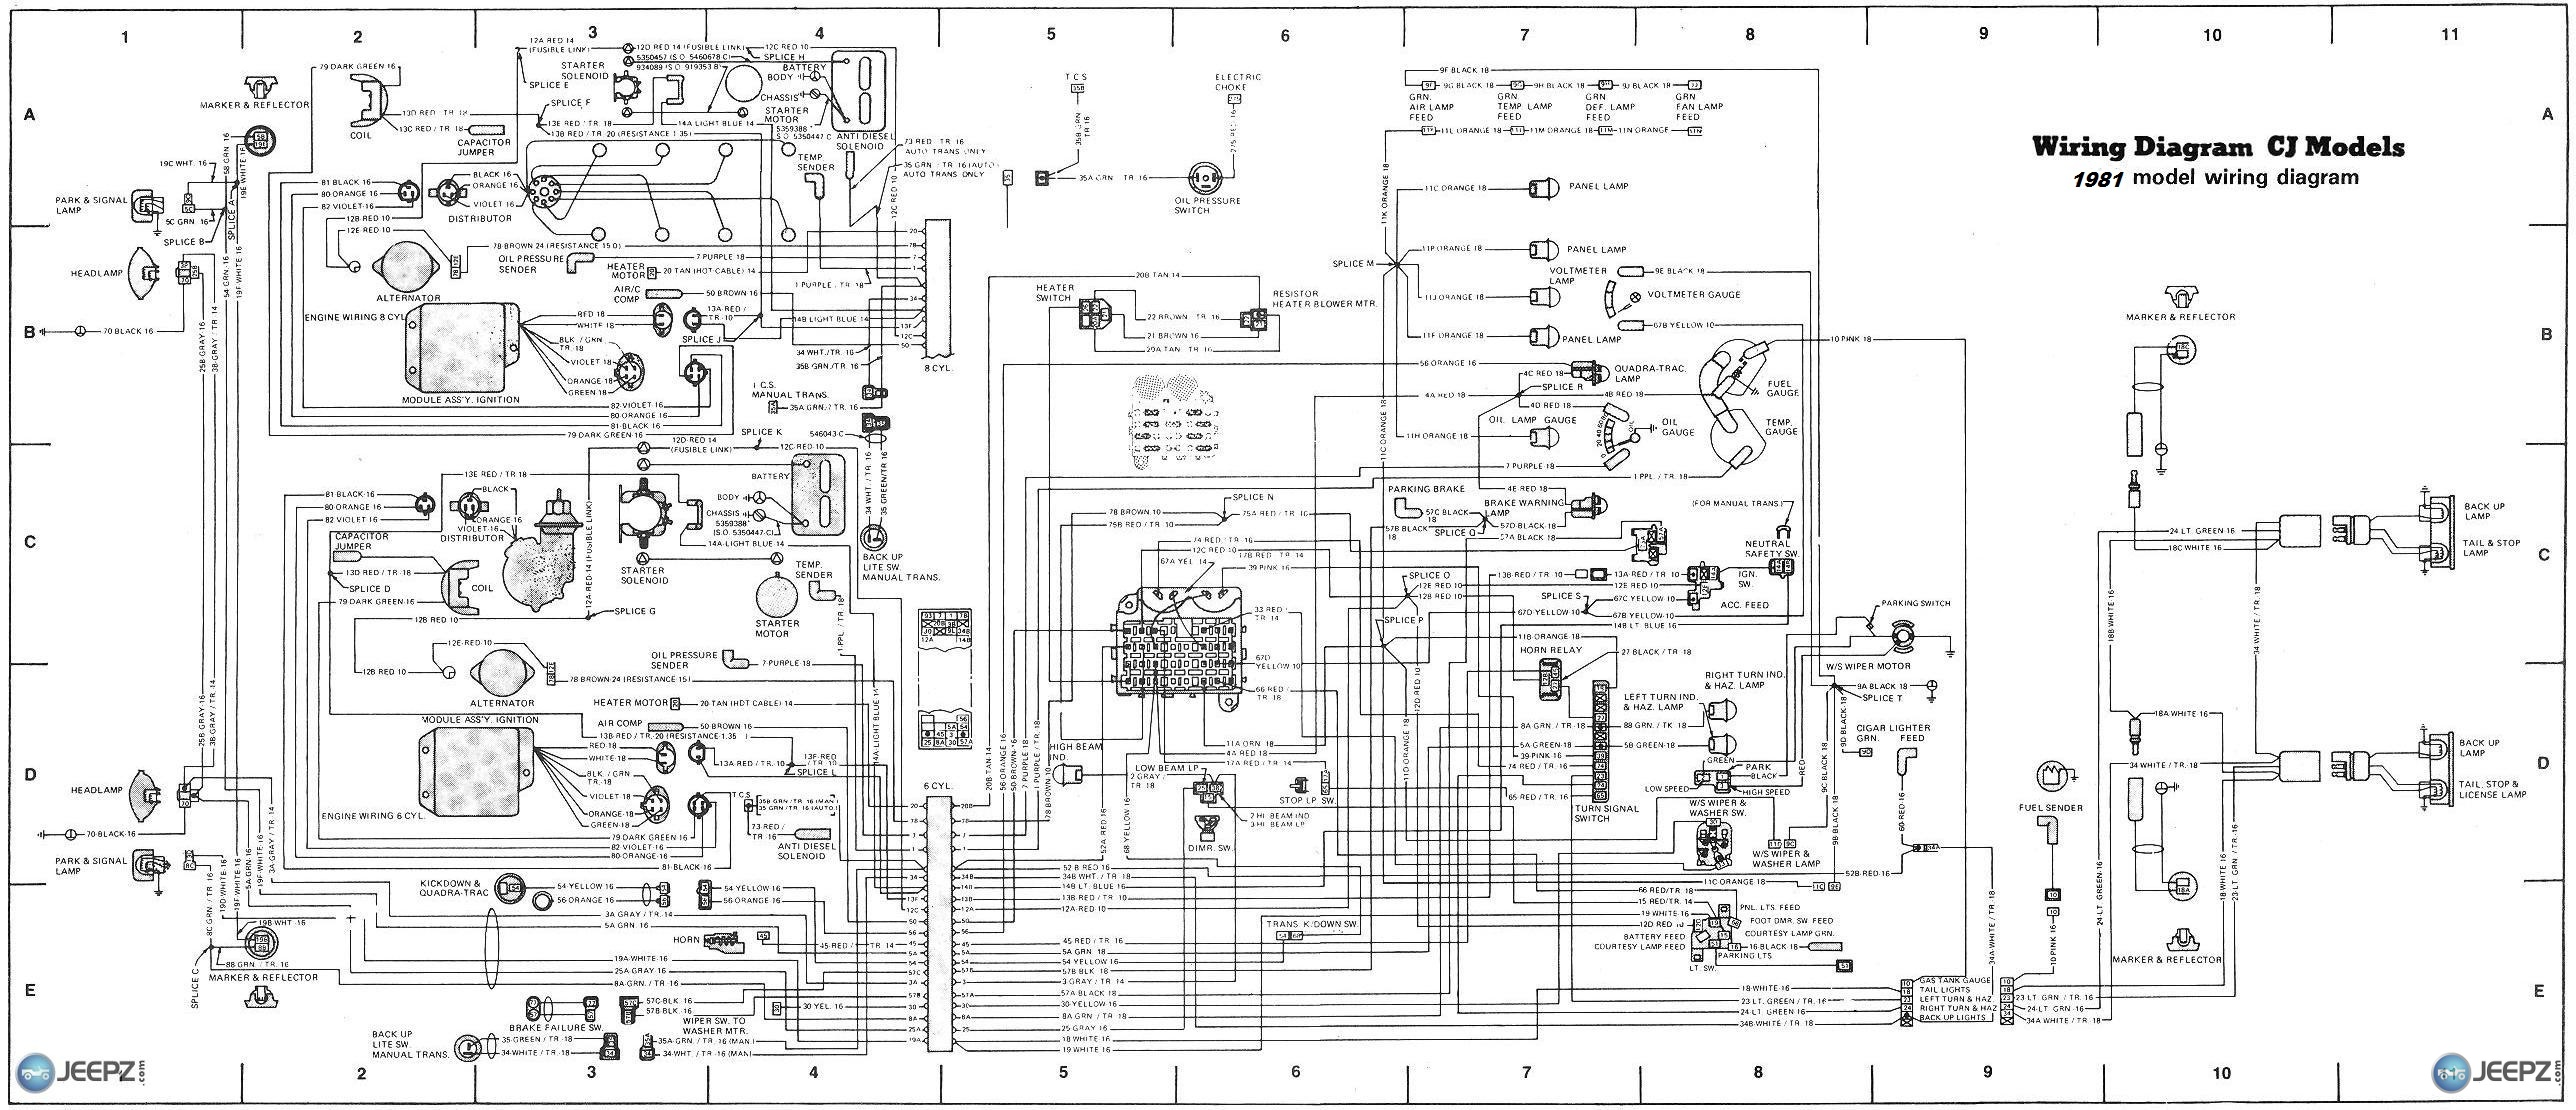 7993d1301845049 cj 7 wire diagram cj wiring diagram 1981 cj 7 wire diagram 7 wire diagram at suagrazia.org